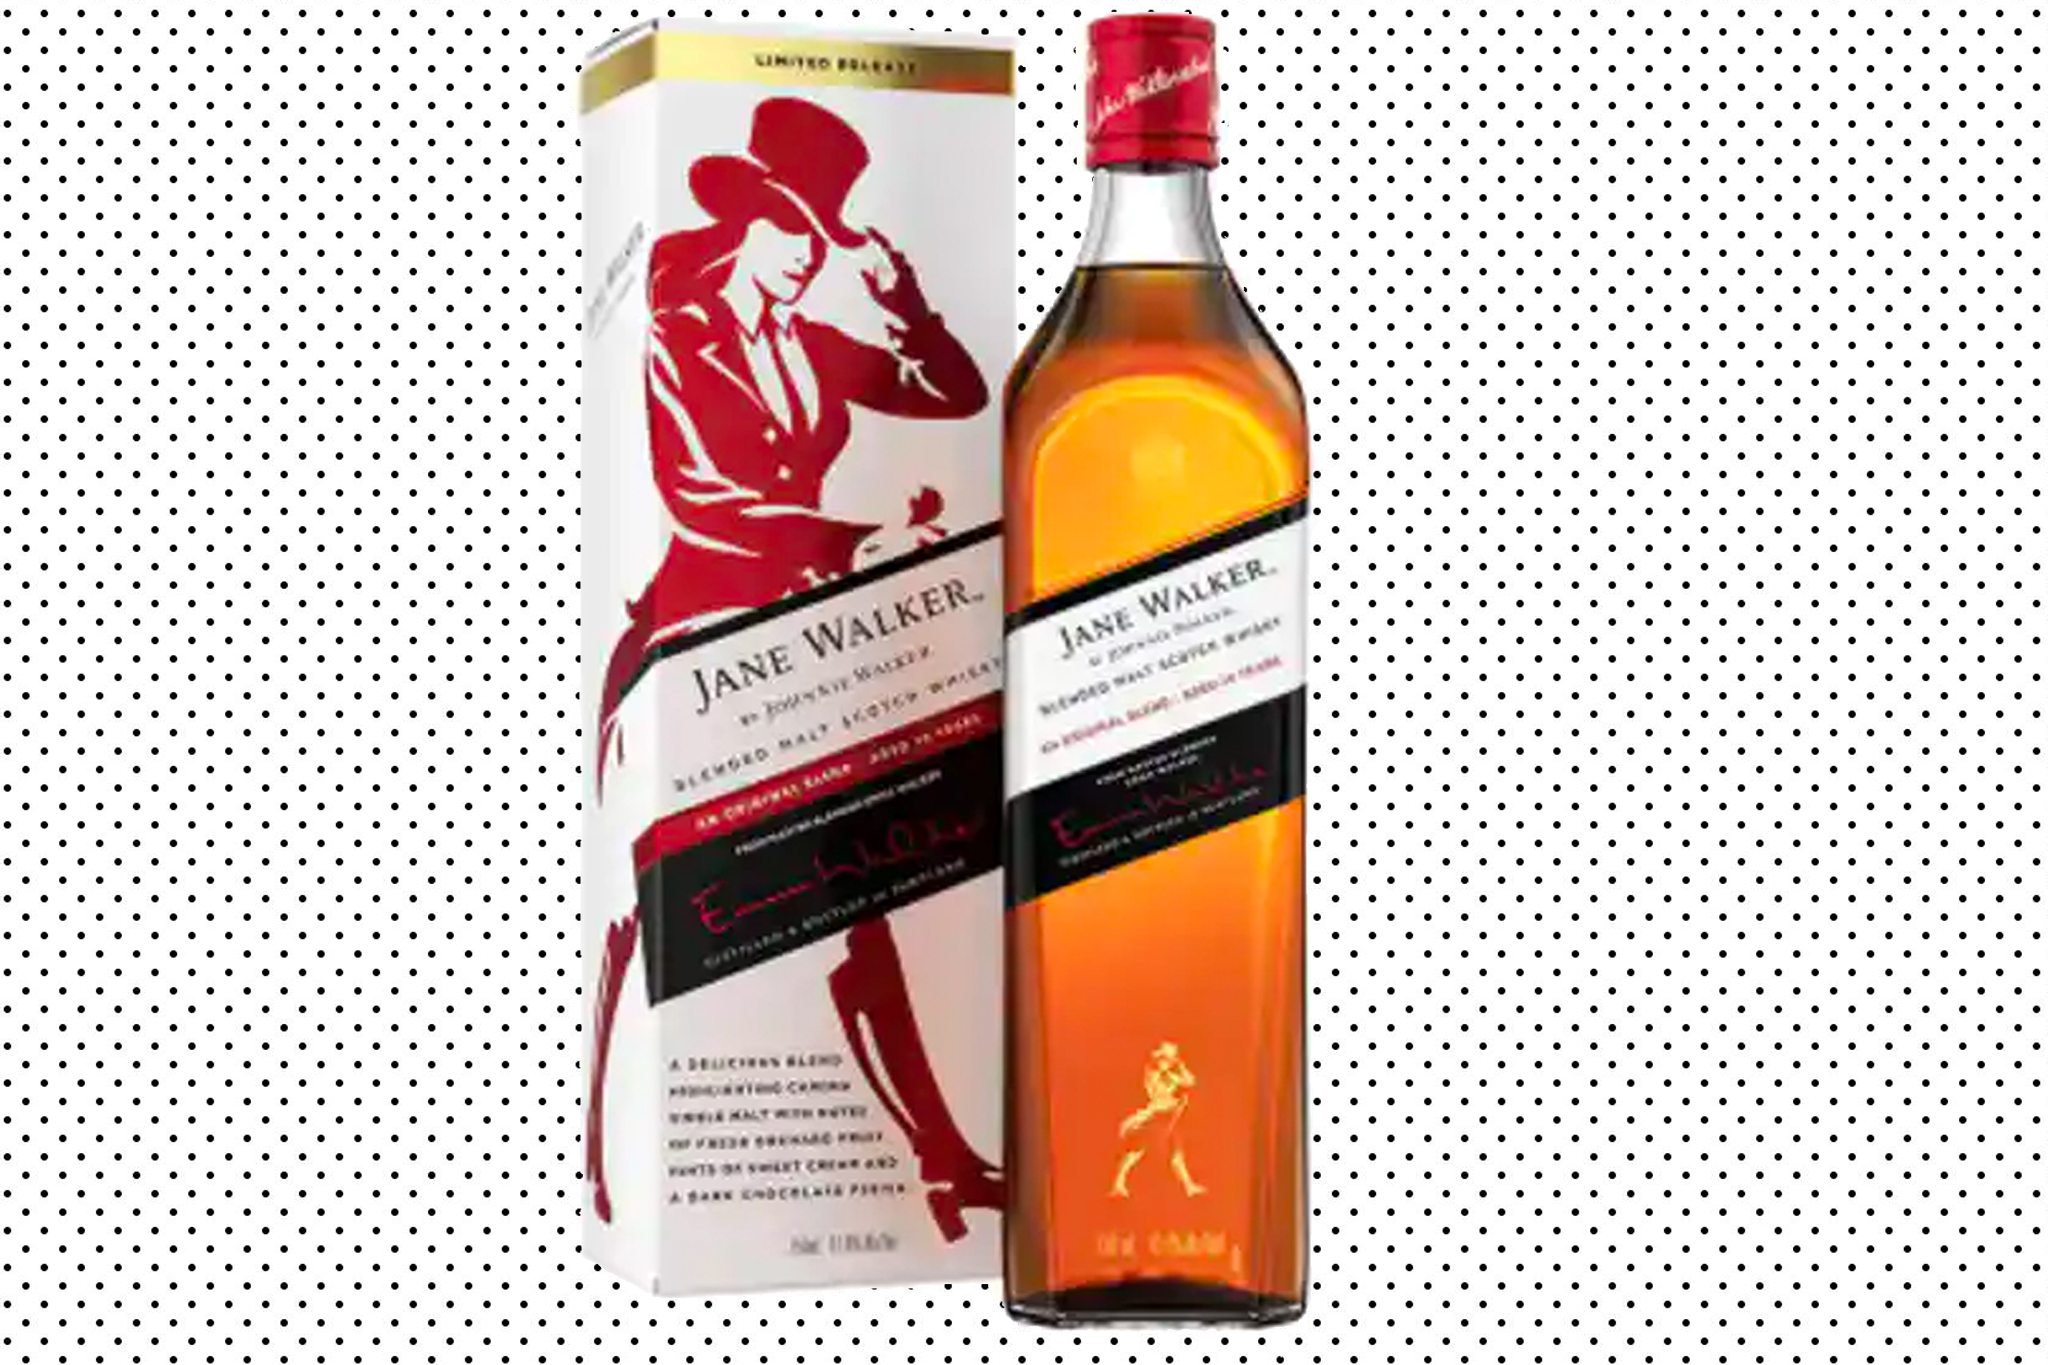 Johnnie Walker sent me some nice sipping scotch so I drank it in the park with my friends